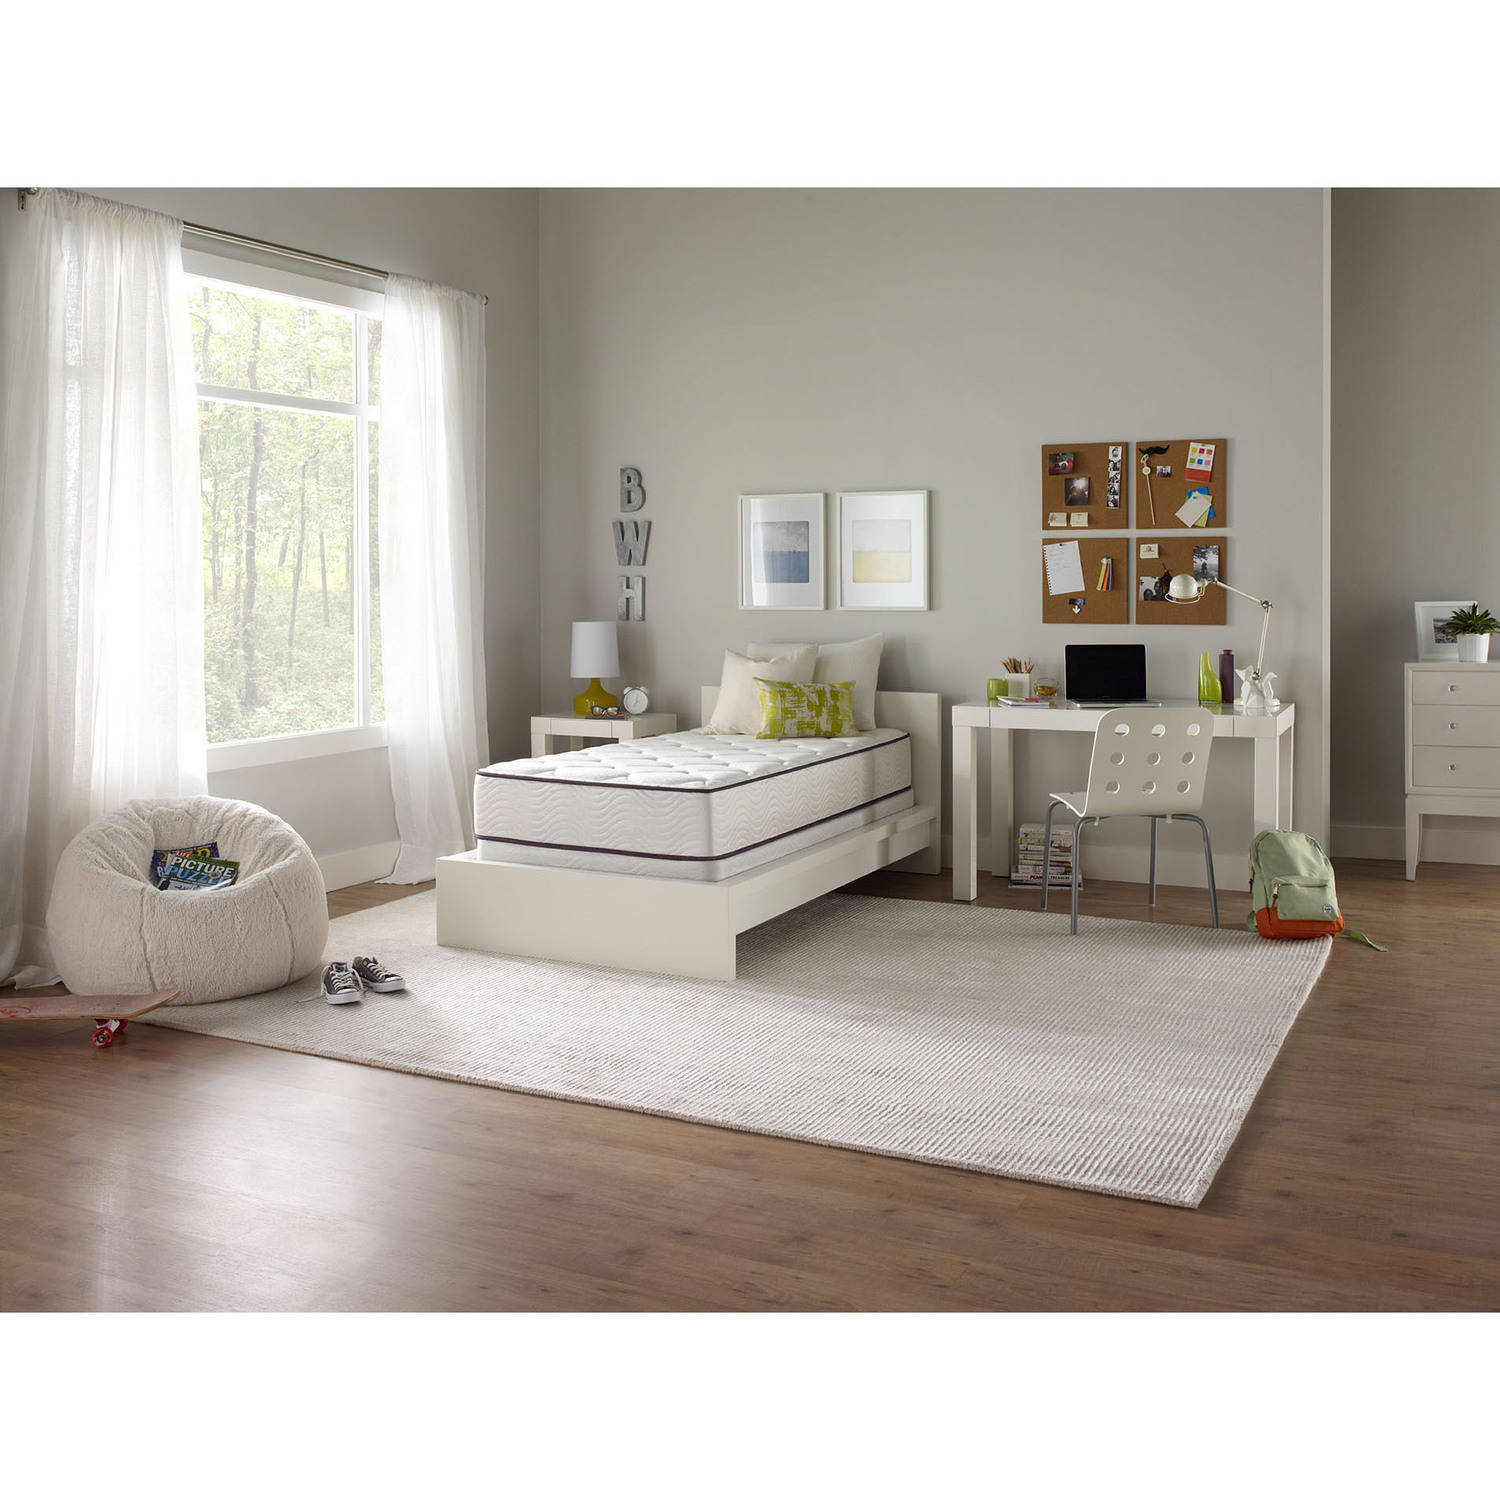 "Beautyrest Studio 10"" Pocketed Coil Plush Mattress, Multiple Sizes"